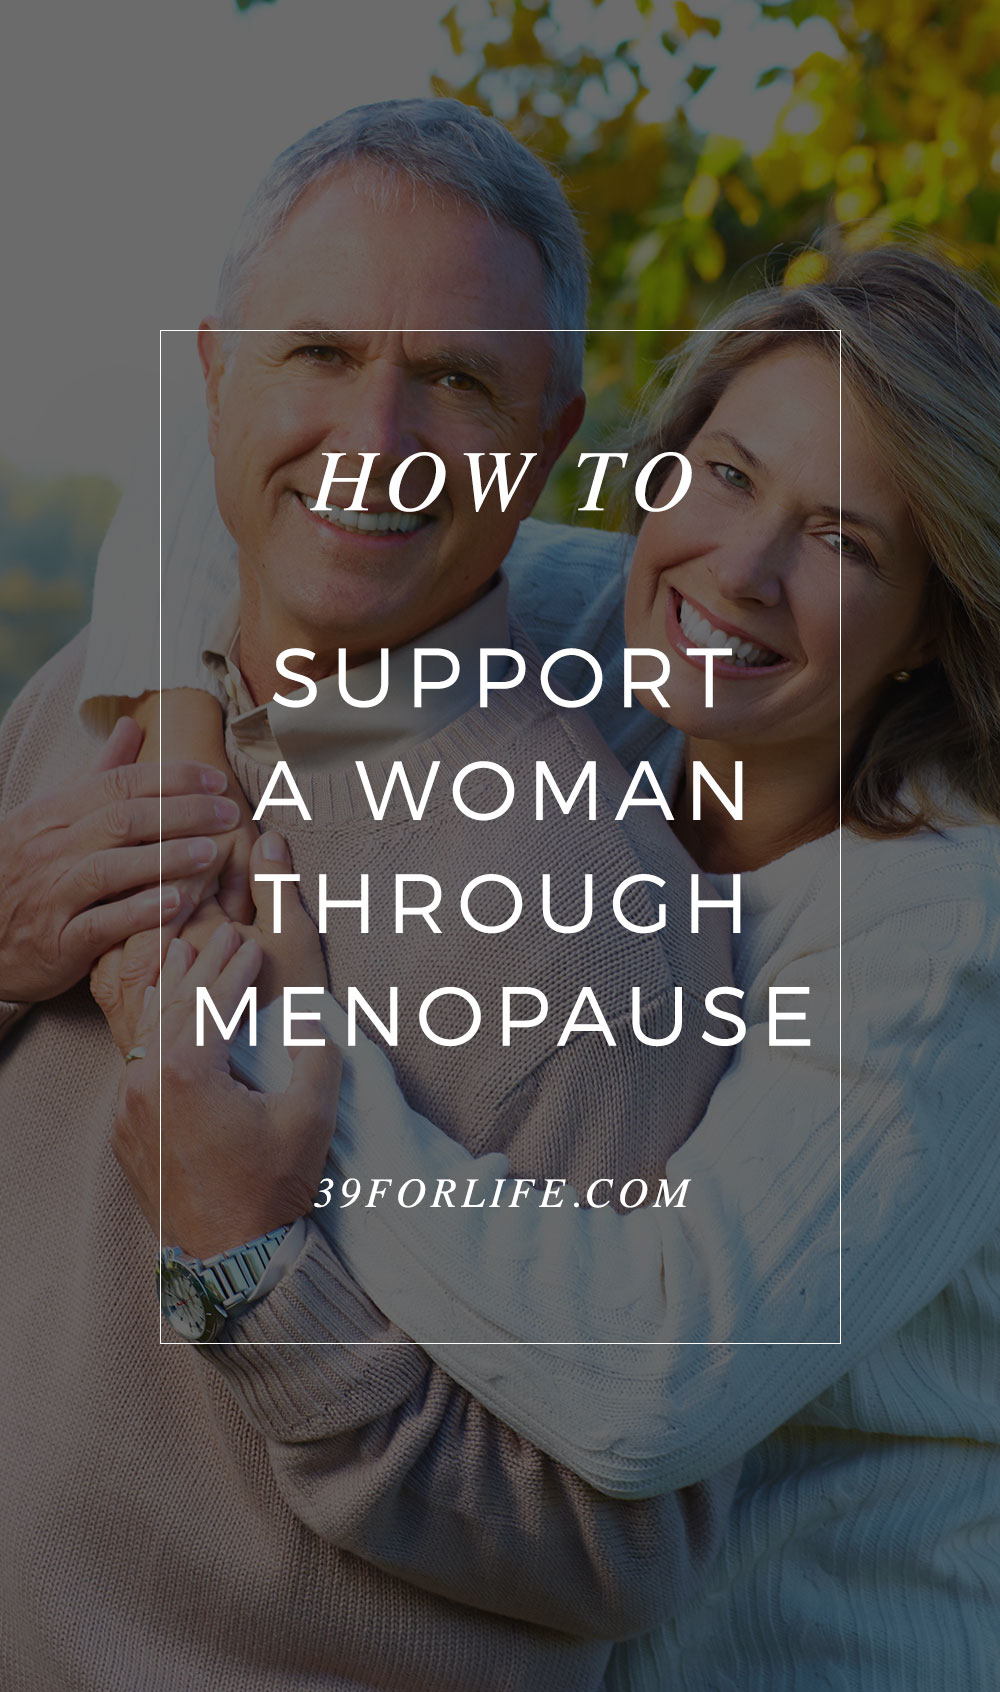 Although menopause is a natural part of a woman's life, the transition can painful for the woman and the people standing on the sidelines.